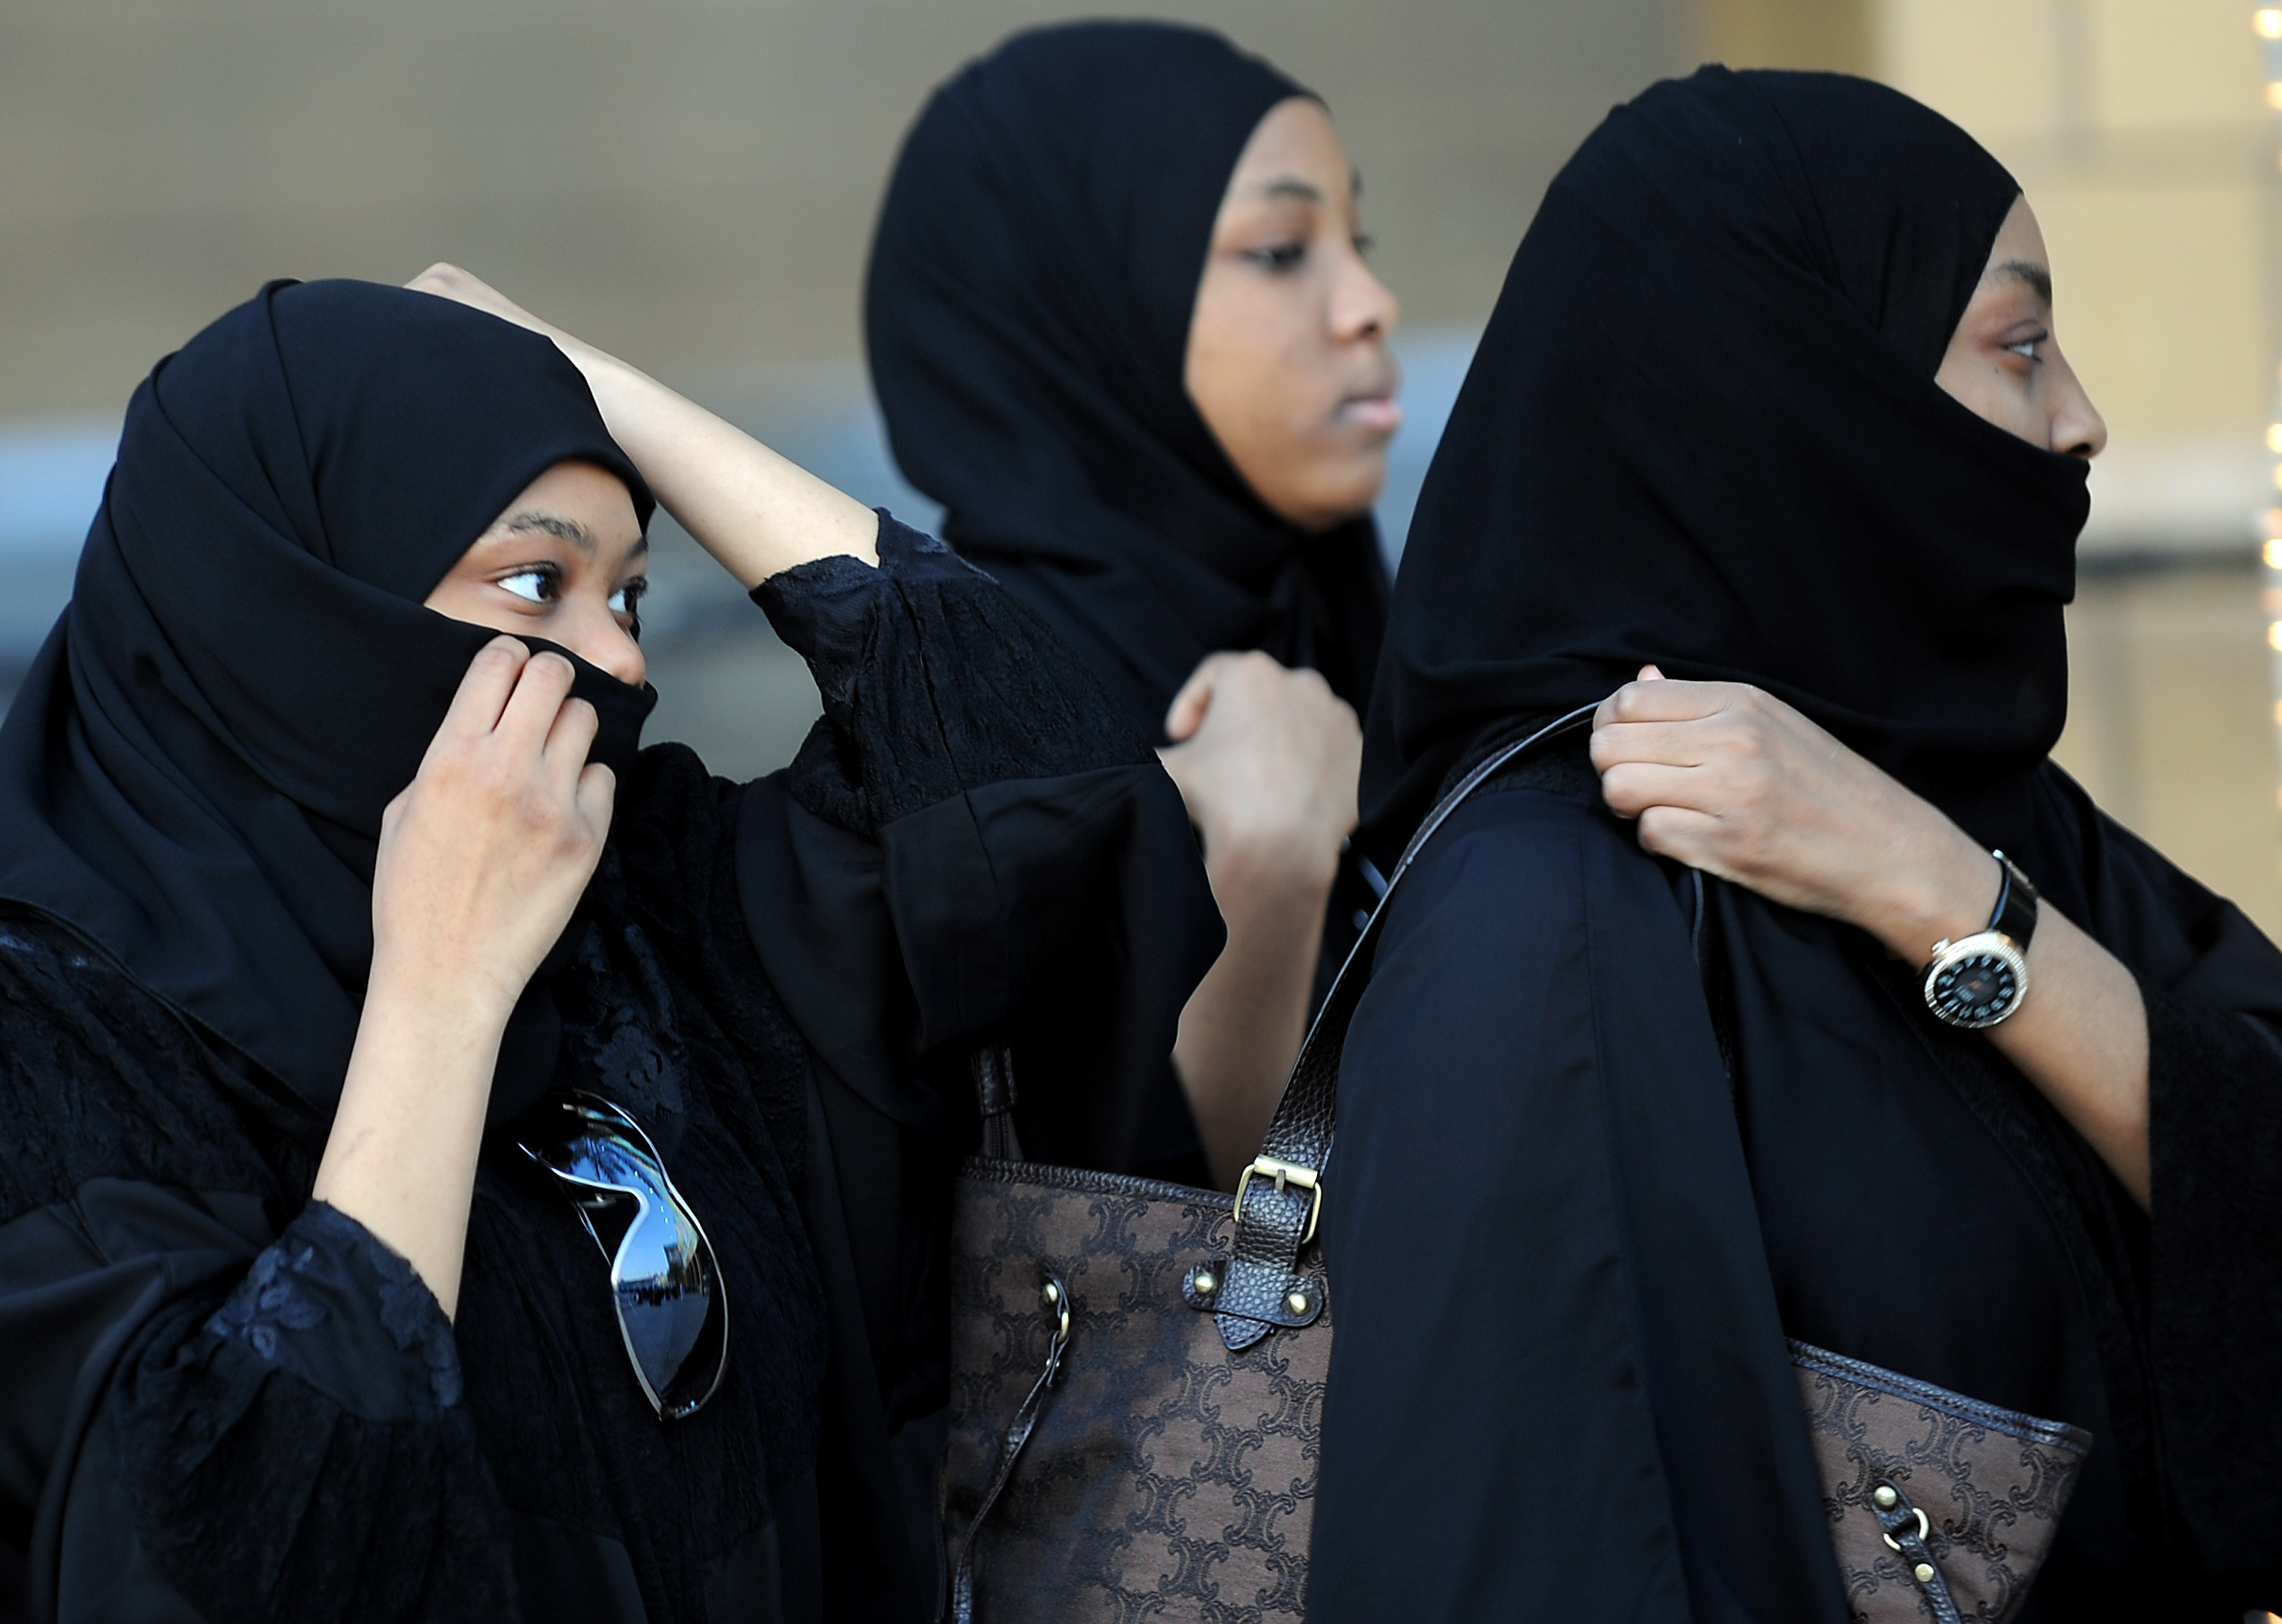 Saudi women attend prayers at a mosque in Riyadh. Women's-rights groups are gaining influence in the kingdom.